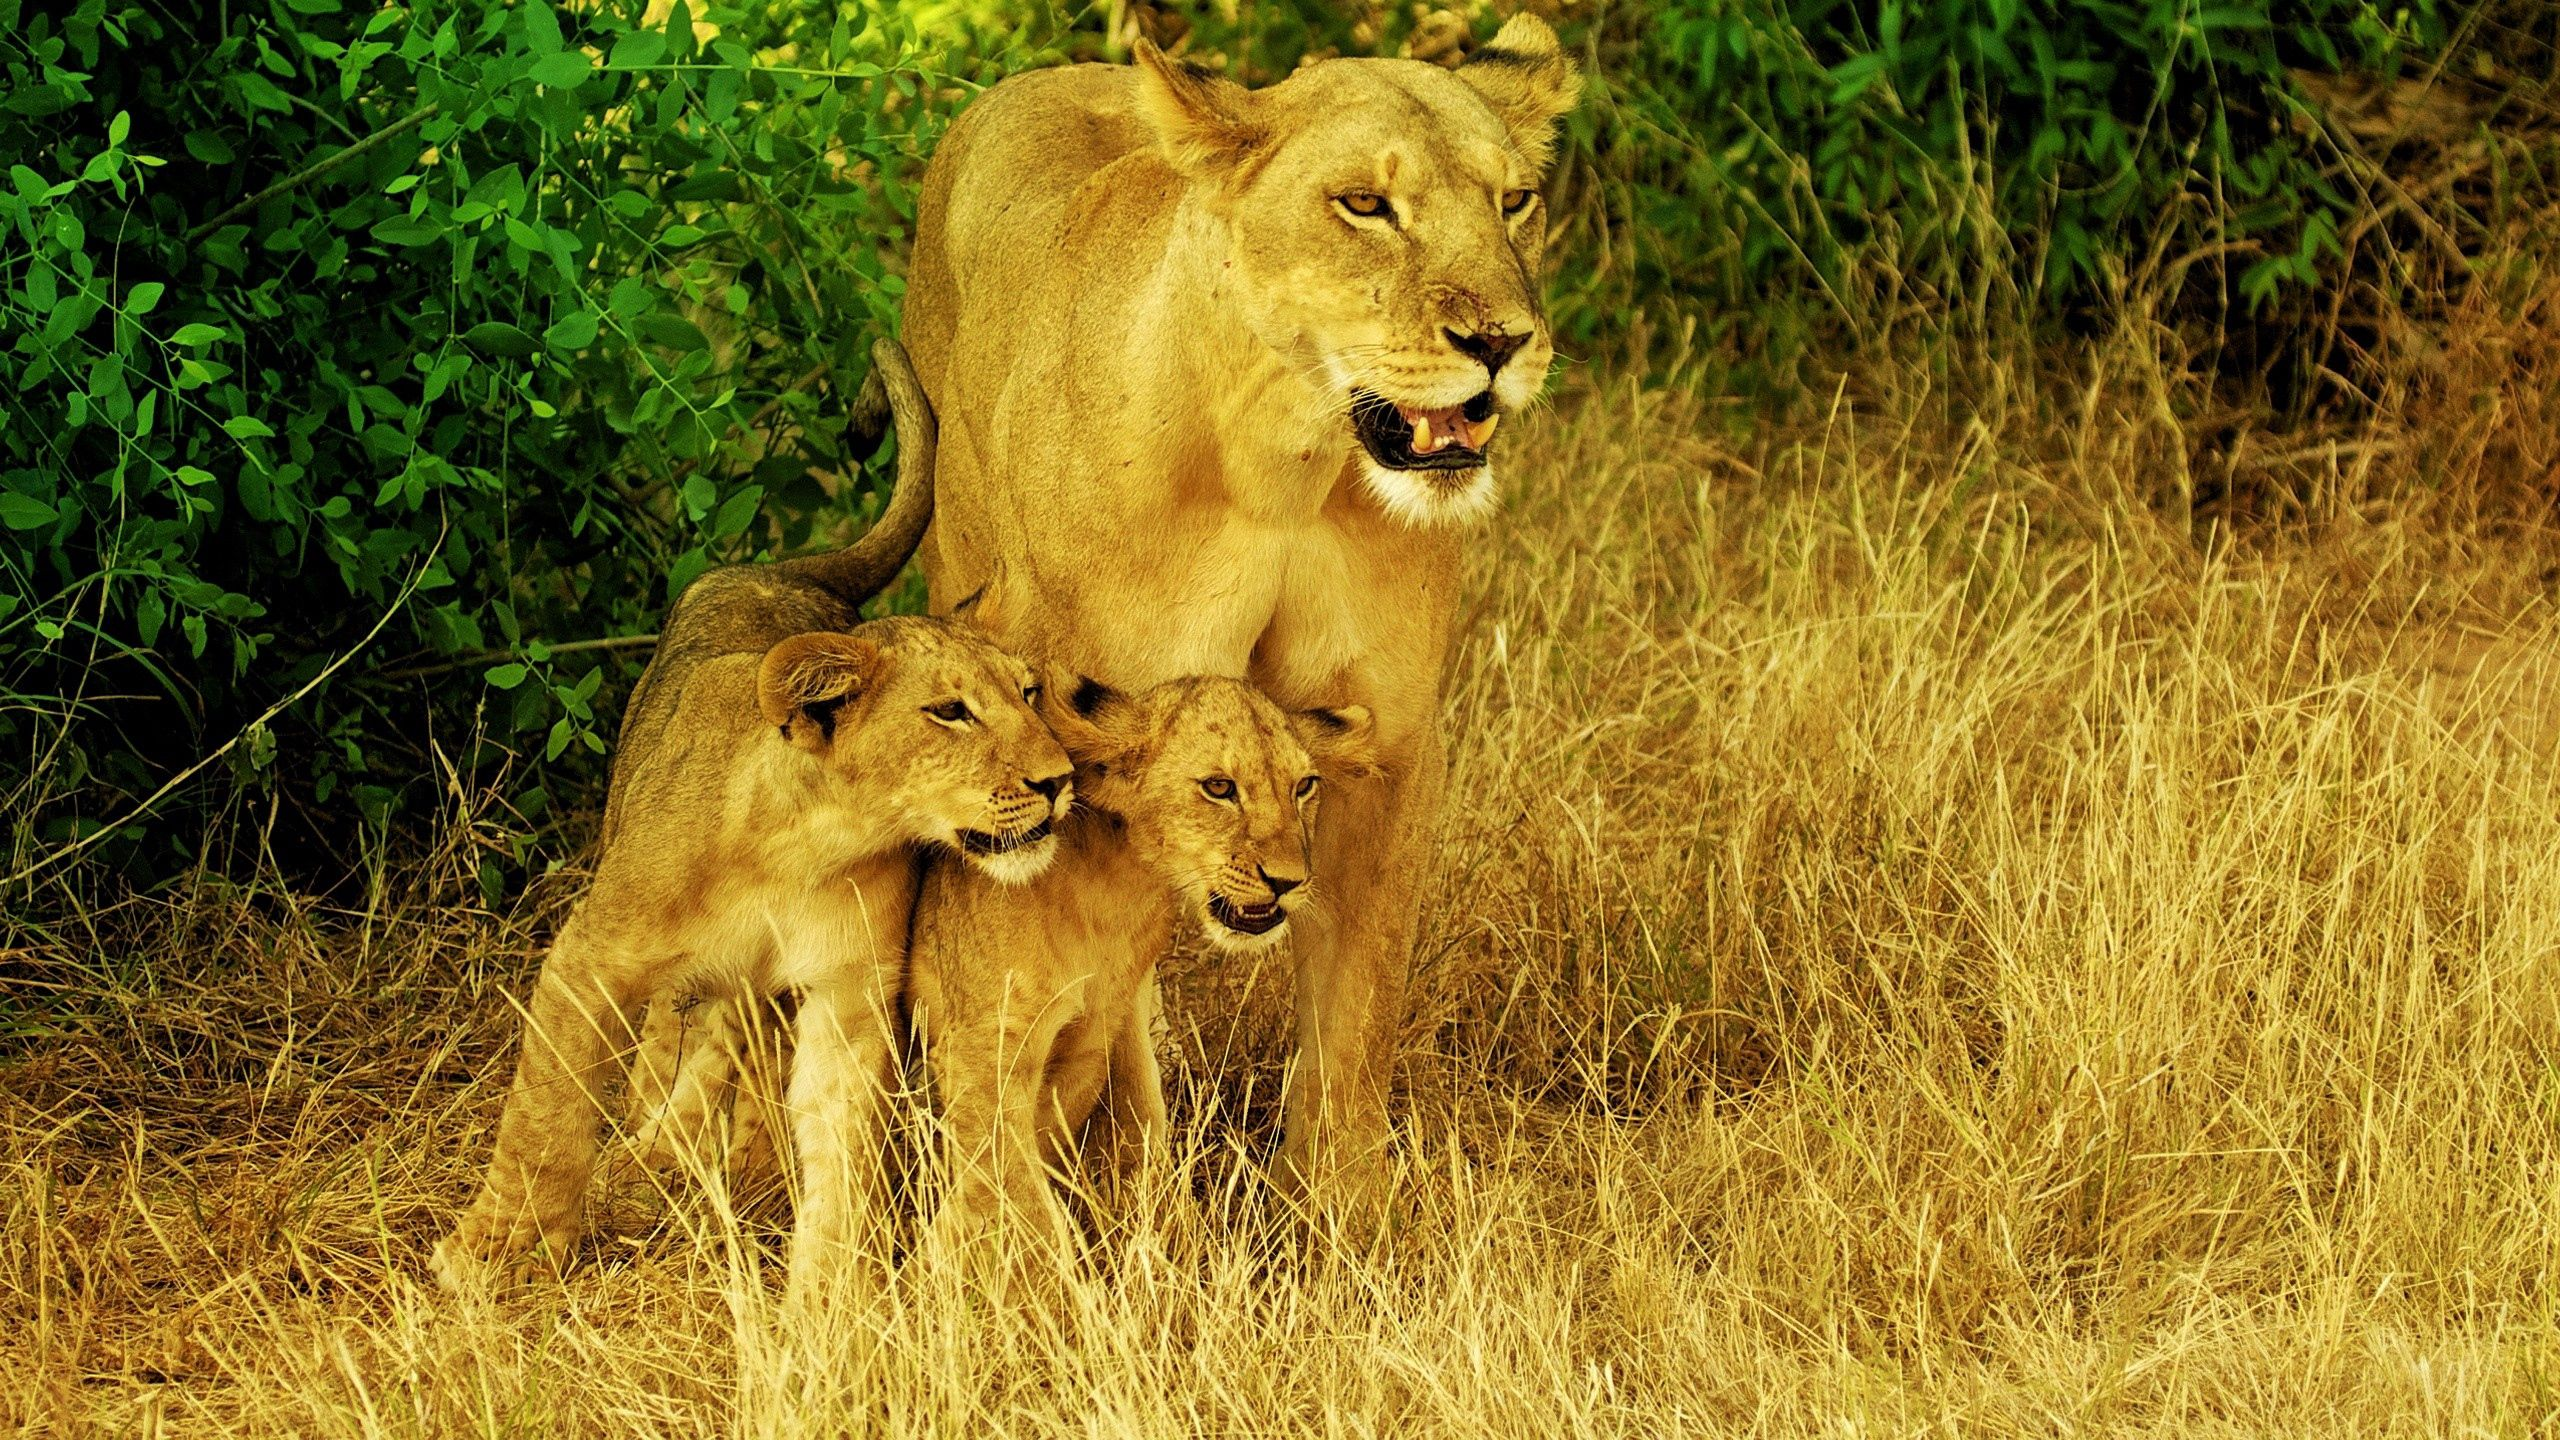 69725 download wallpaper Animals, Family, Grass, Stroll, Lions screensavers and pictures for free